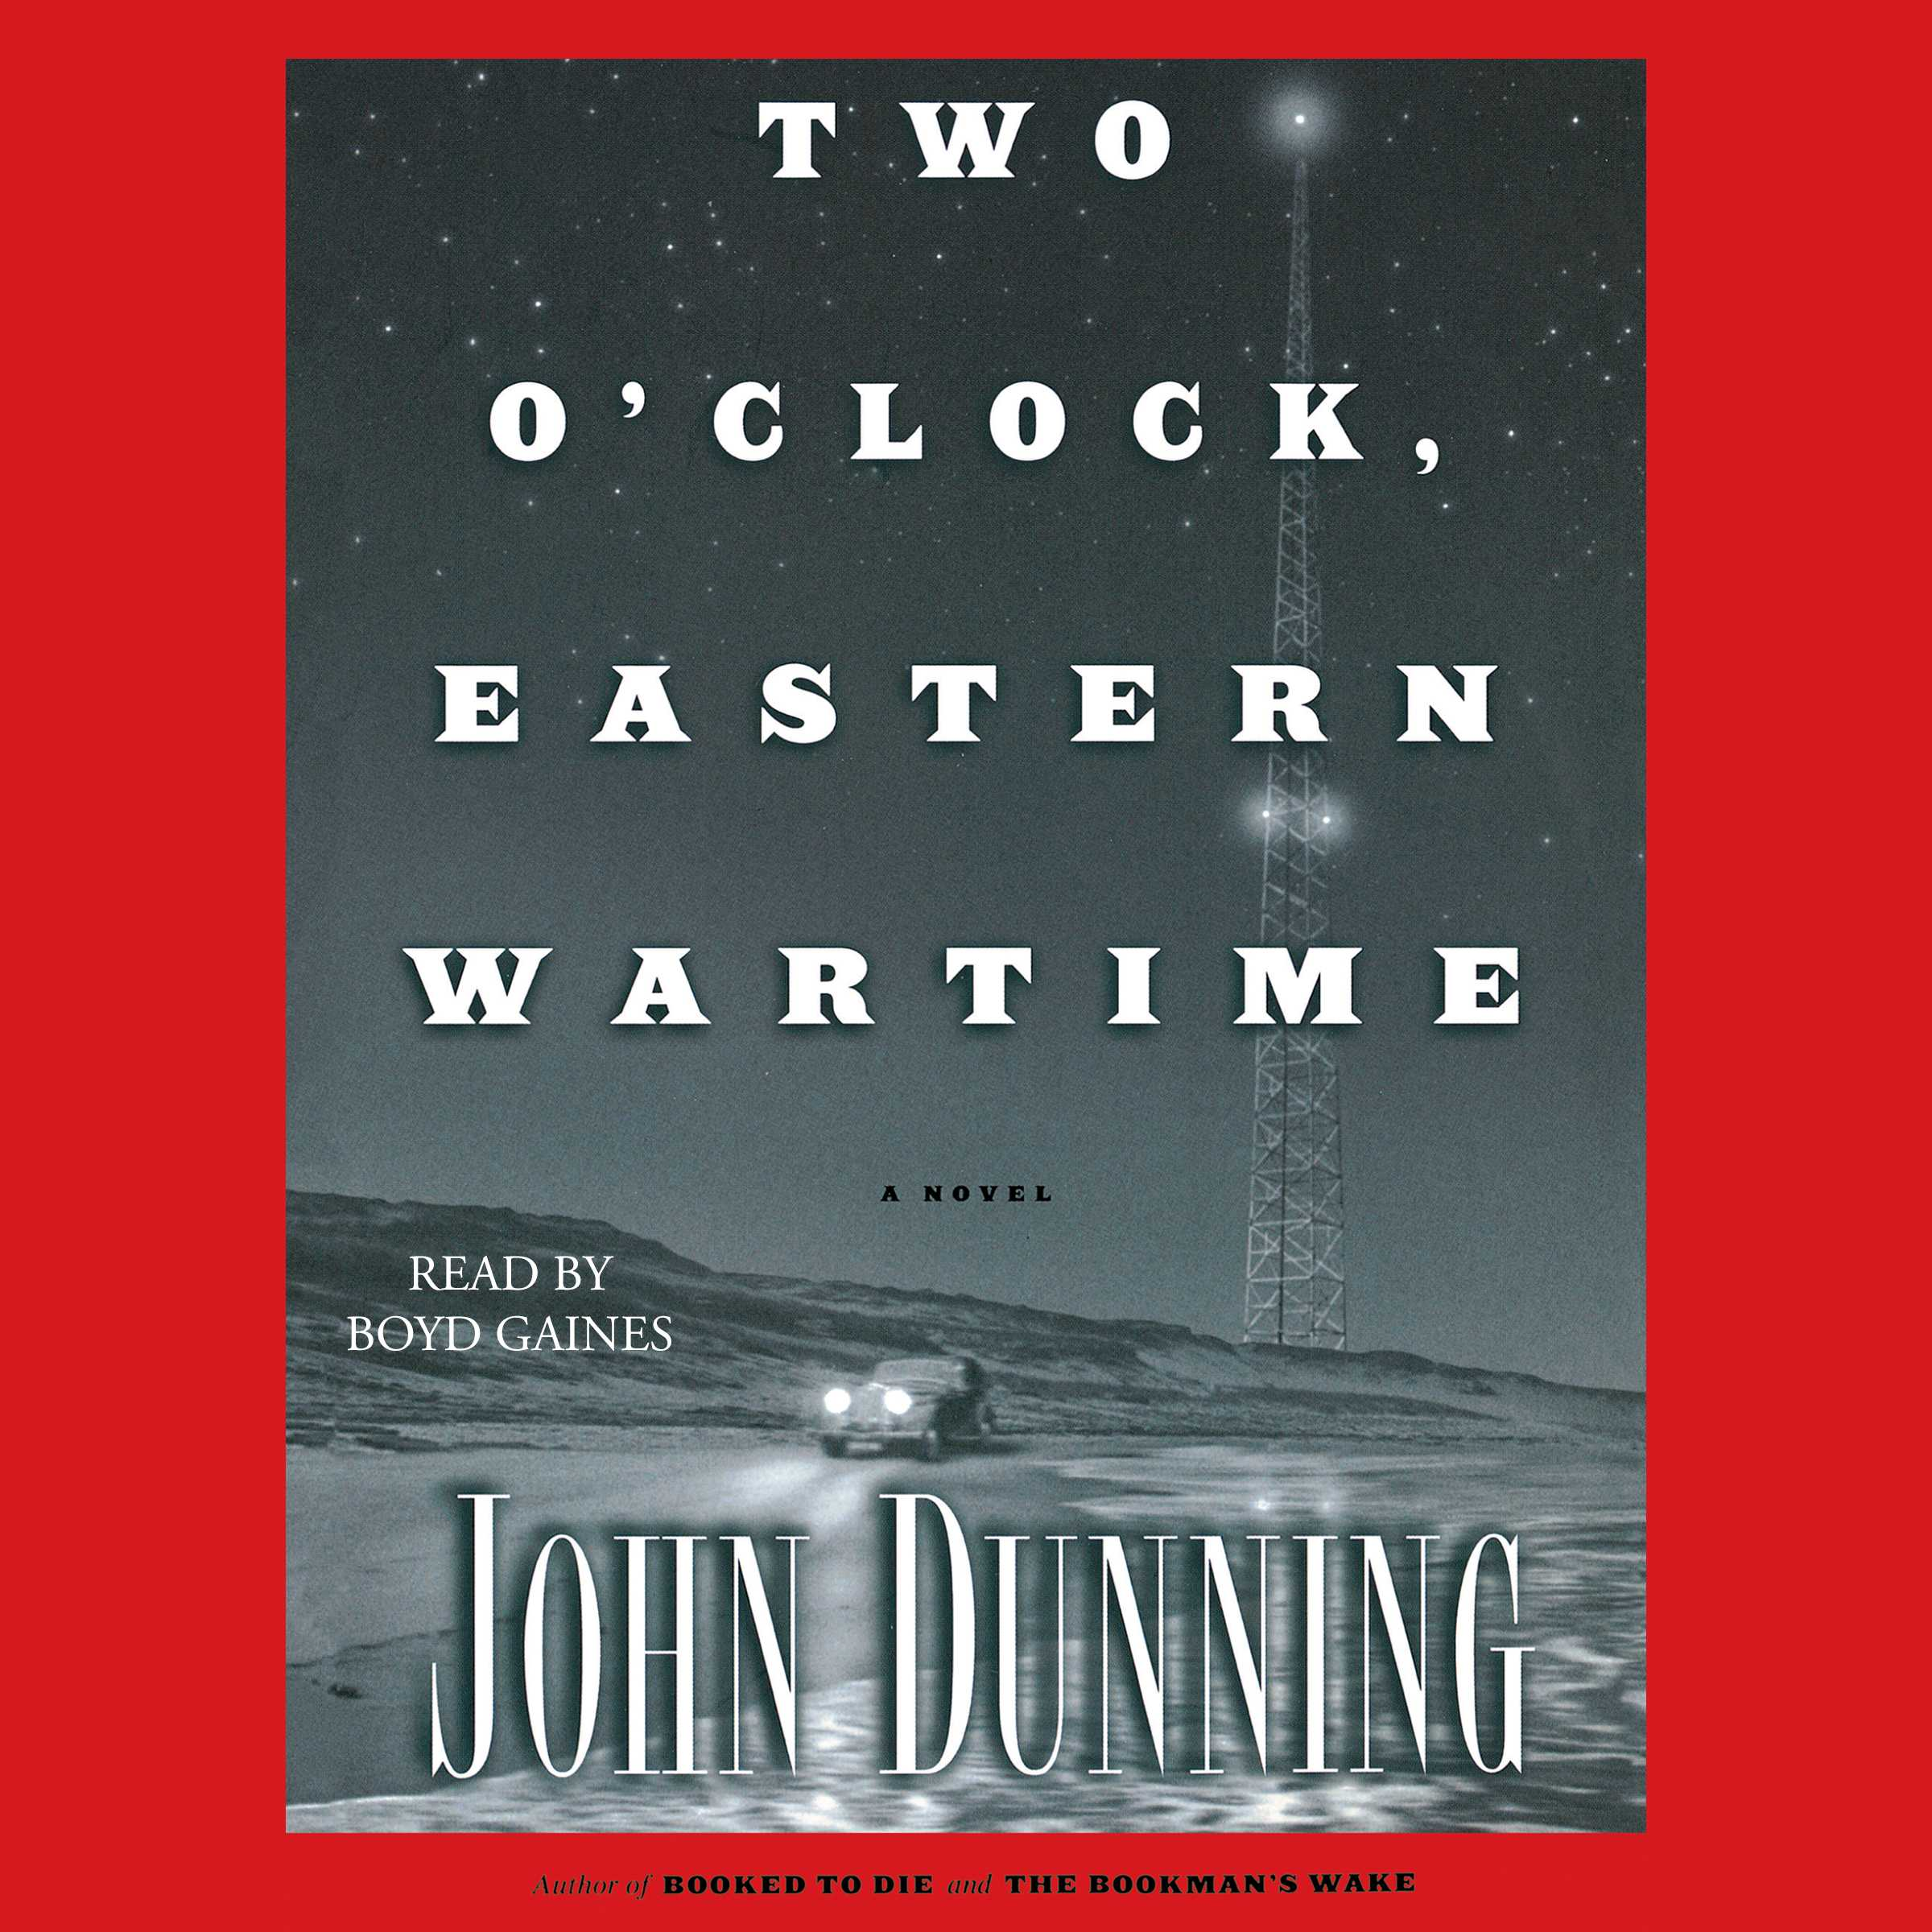 Two oclock eastern wartime 9780743519724 hr